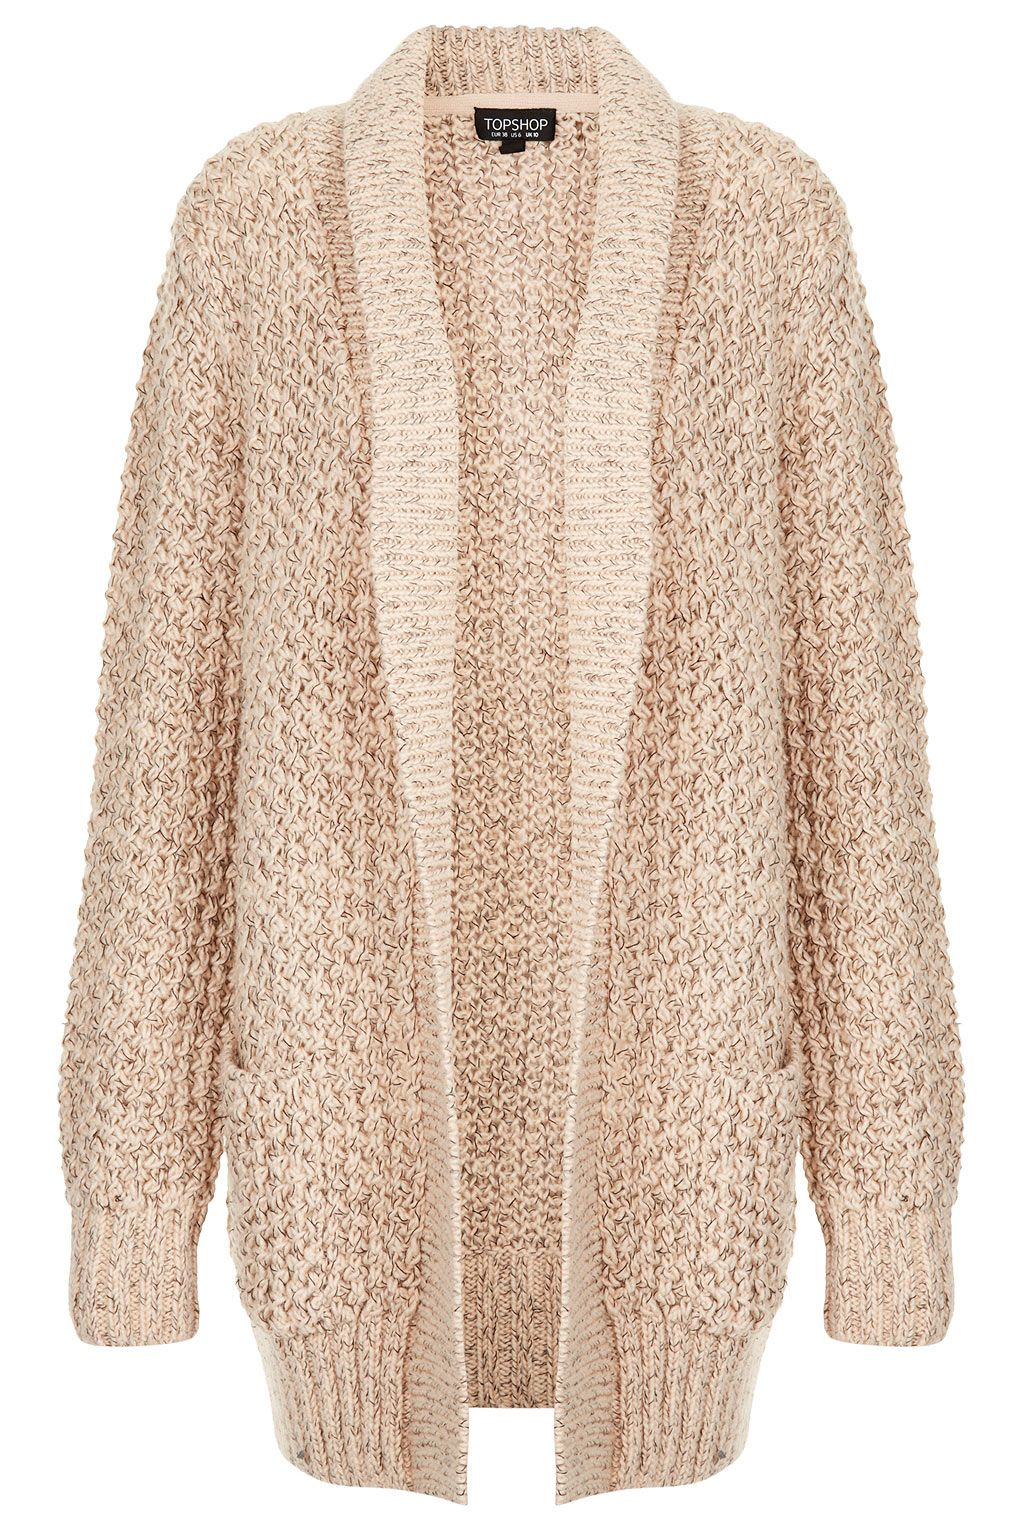 top shop nude sweater | My Style | Pinterest | Shawl collar ...